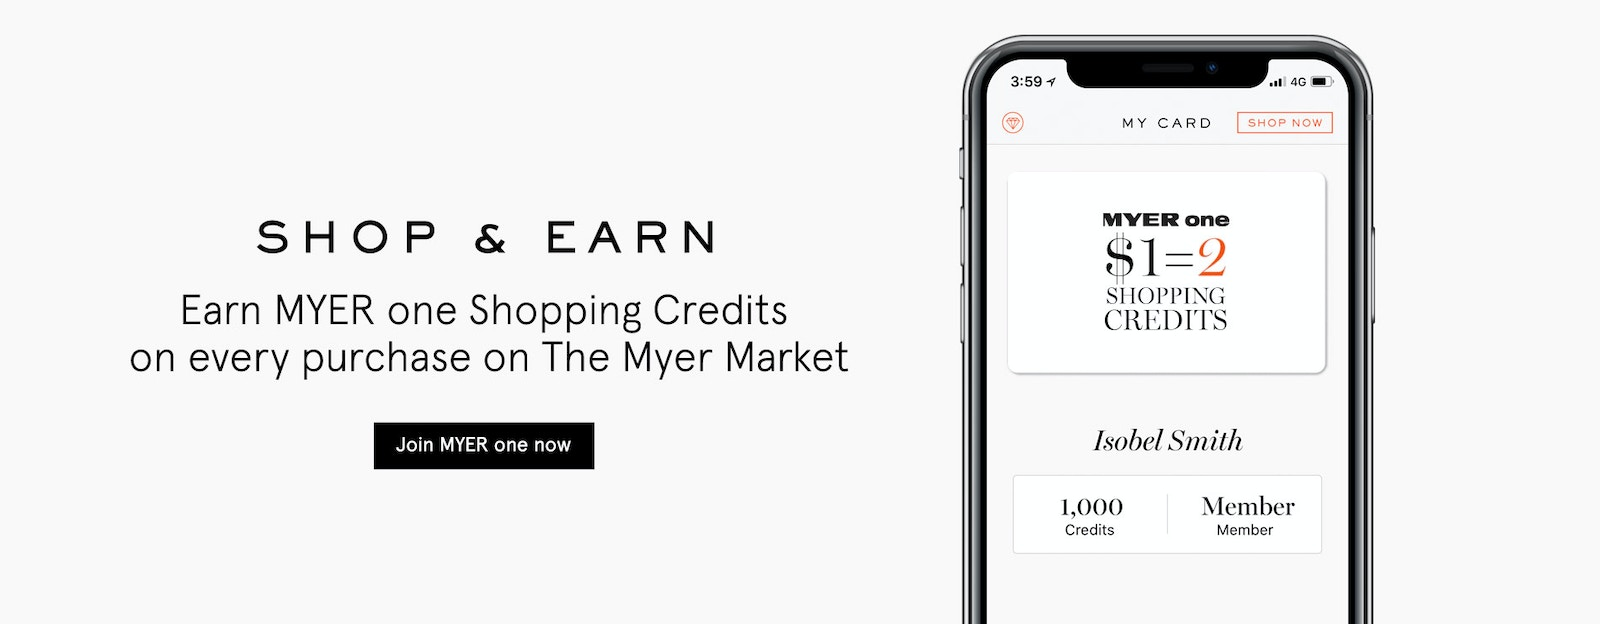 Earn MYER one Shopping Credits